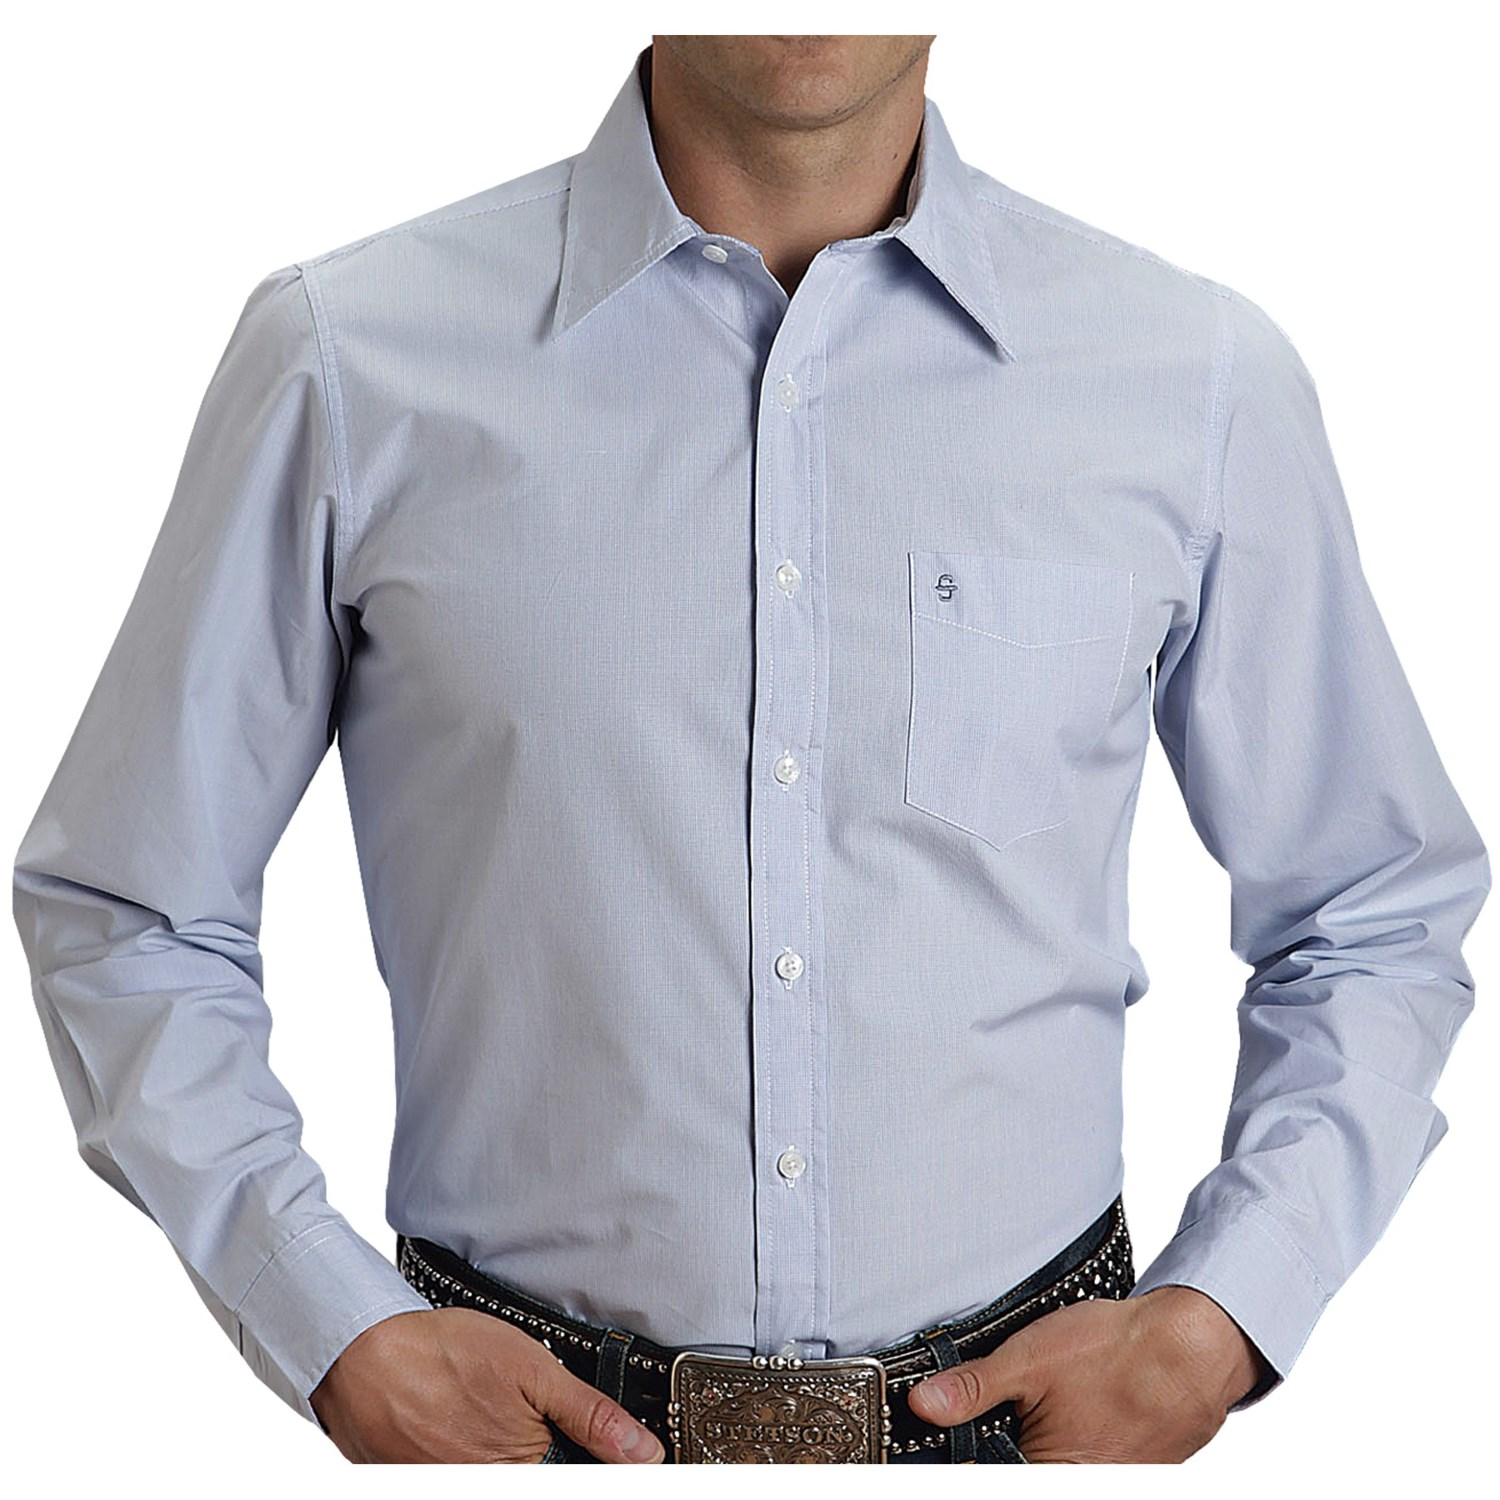 Stetson sanded poplin check shirt button up long sleeve for Nice mens button up shirts